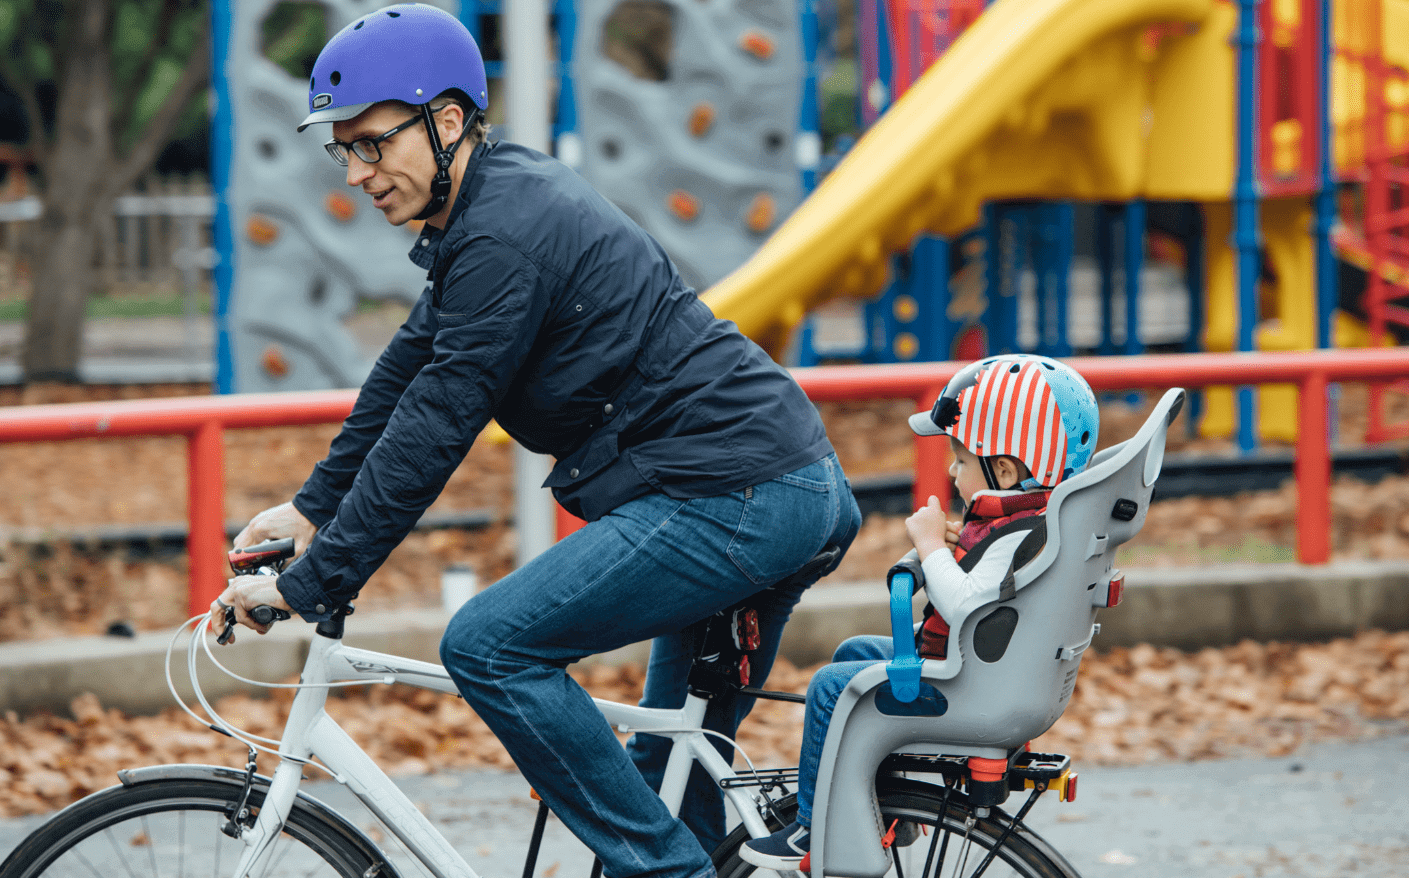 New Designs from Nutcase Get Kids Excited About Biking